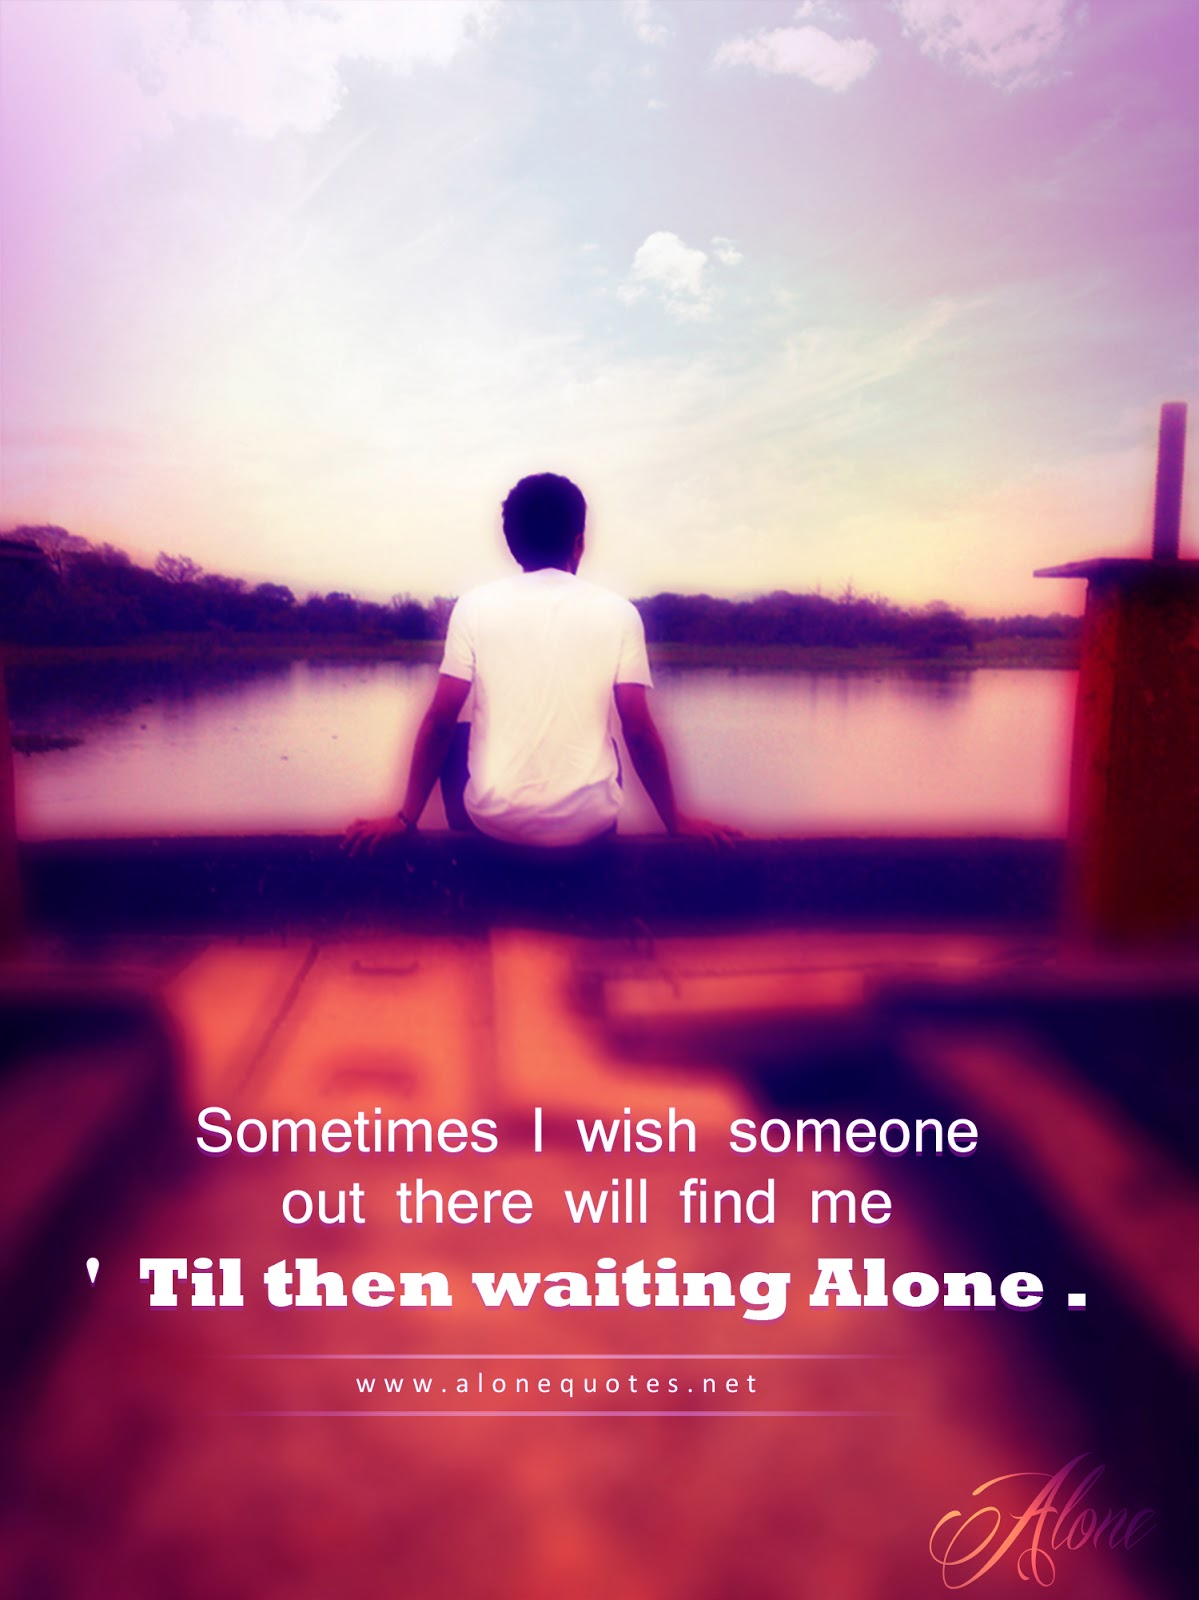 Sad Quotes About Love Pdf : Alone Quotes love wallpaper With Resolutions 11991600 Pixel HTML ...